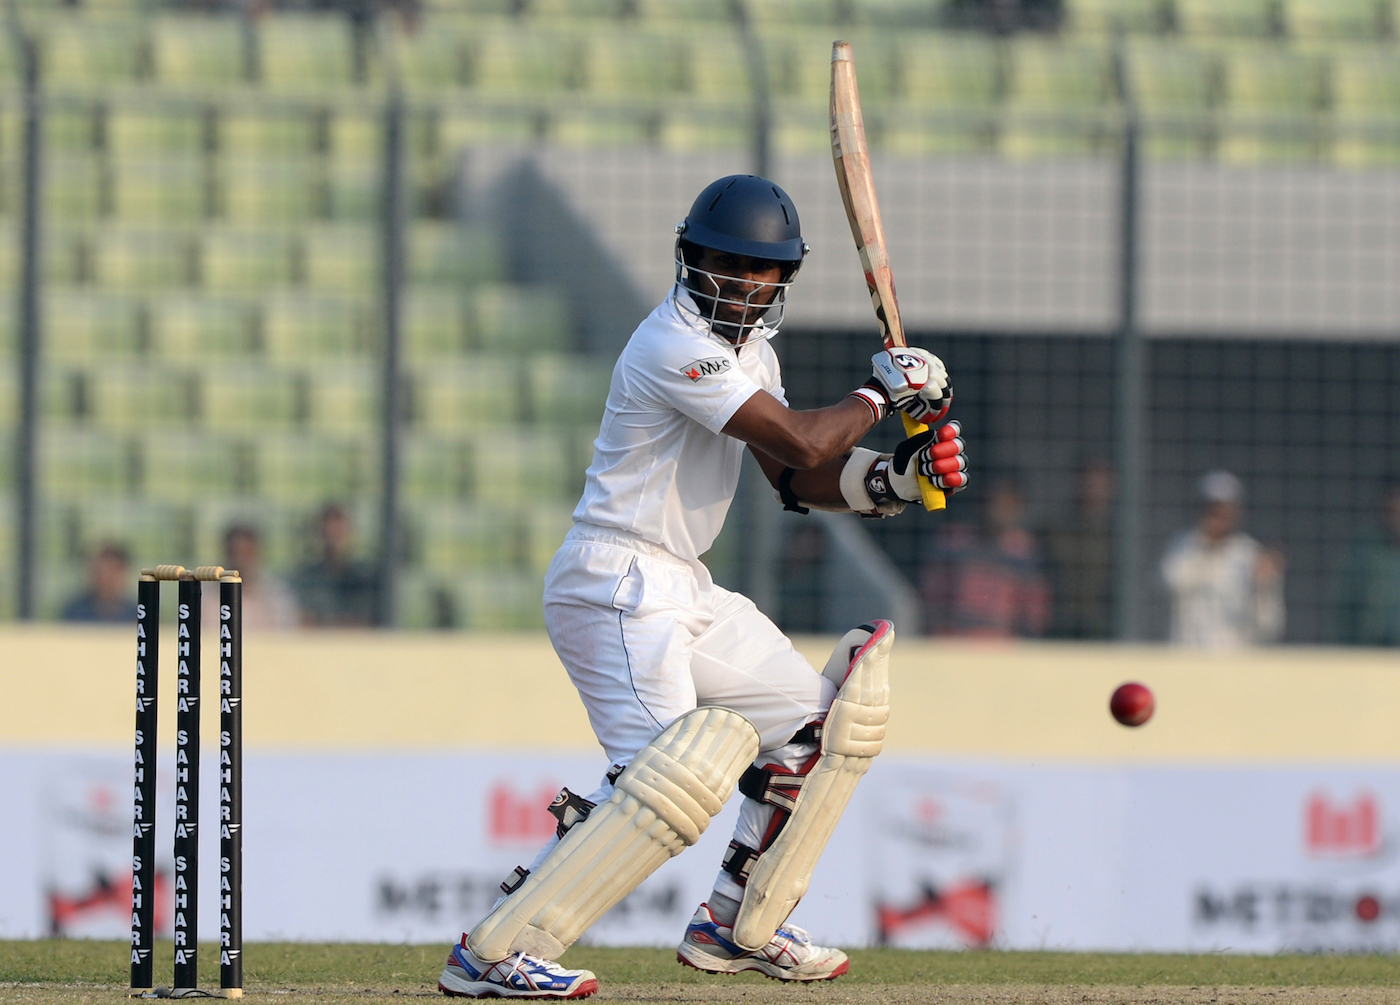 Kaushal Silva's pre-batting boogie earns him a spot on this list